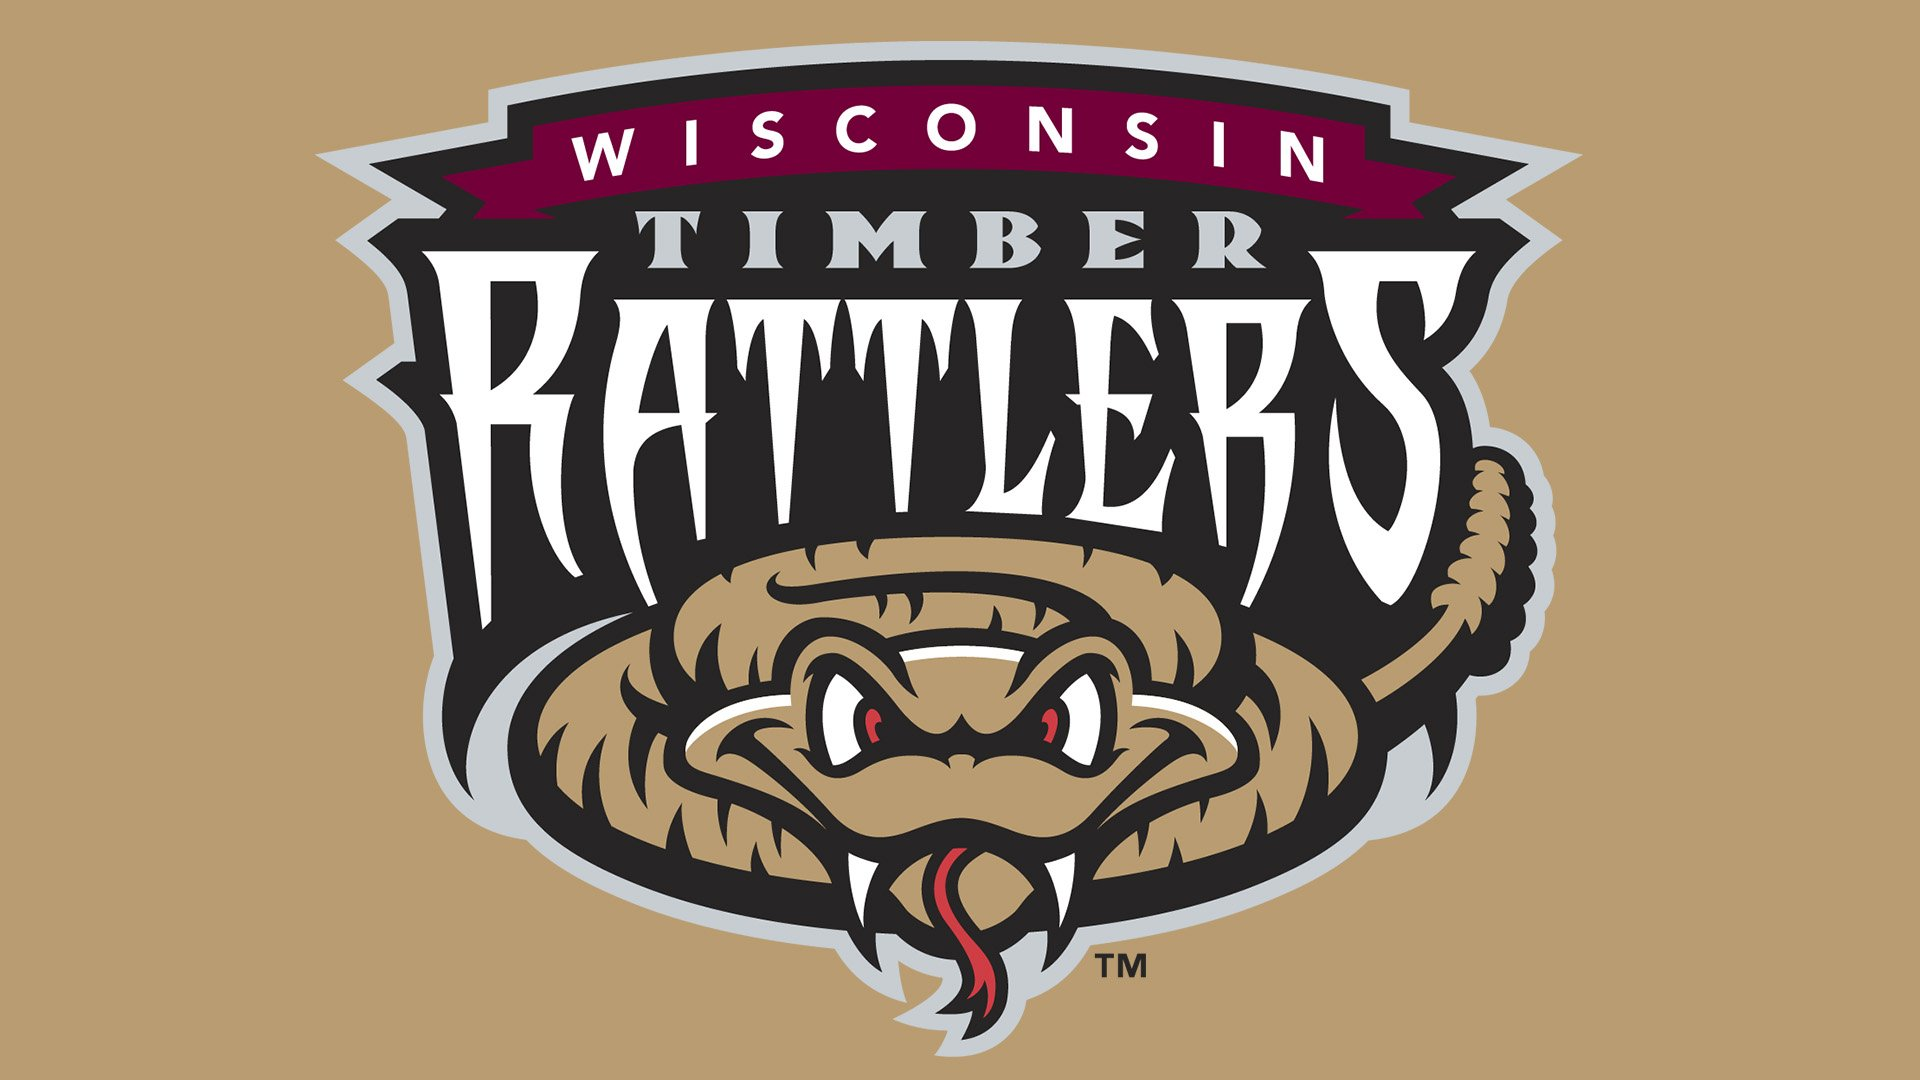 Meaning Wisconsin Timber Rattlers logo and symbol | history and ...